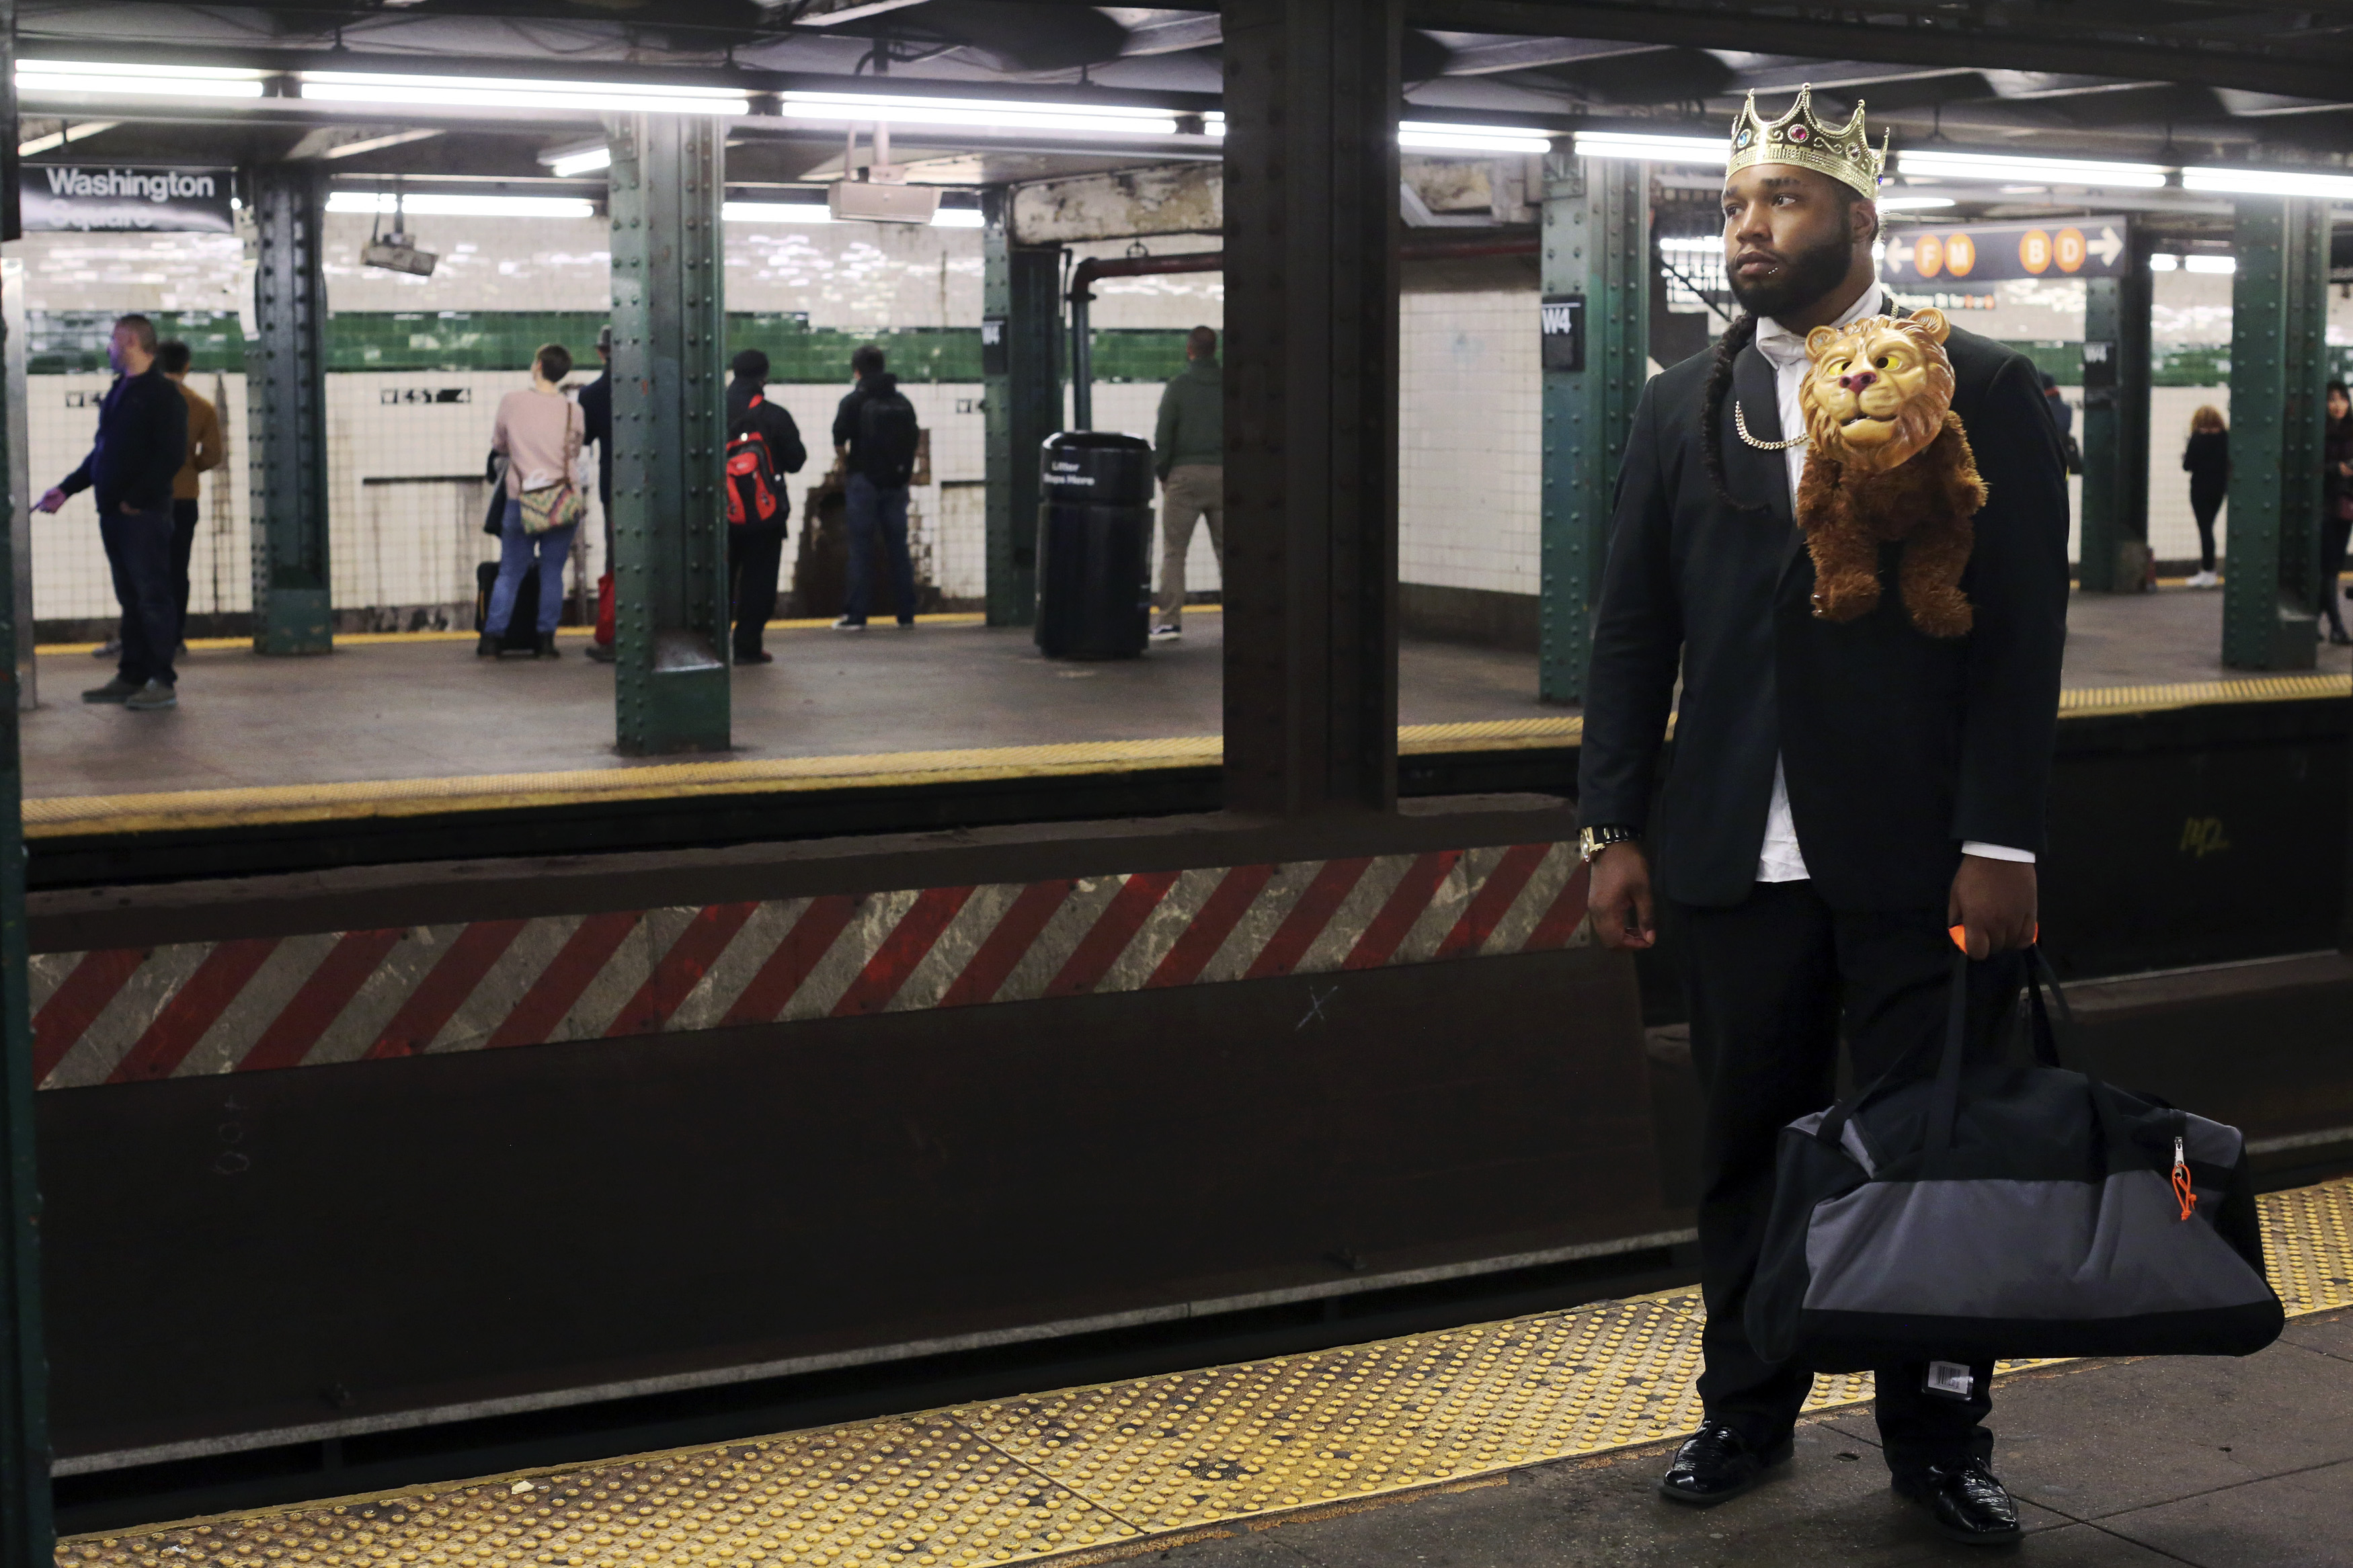 """Ro'zaye Bellevue, dressed as Prince Akeem from the movie """"Coming to America"""" for Halloween, waits for the train at the West 4 Street Station, Saturday, Oct. 31, 2015, in New York."""